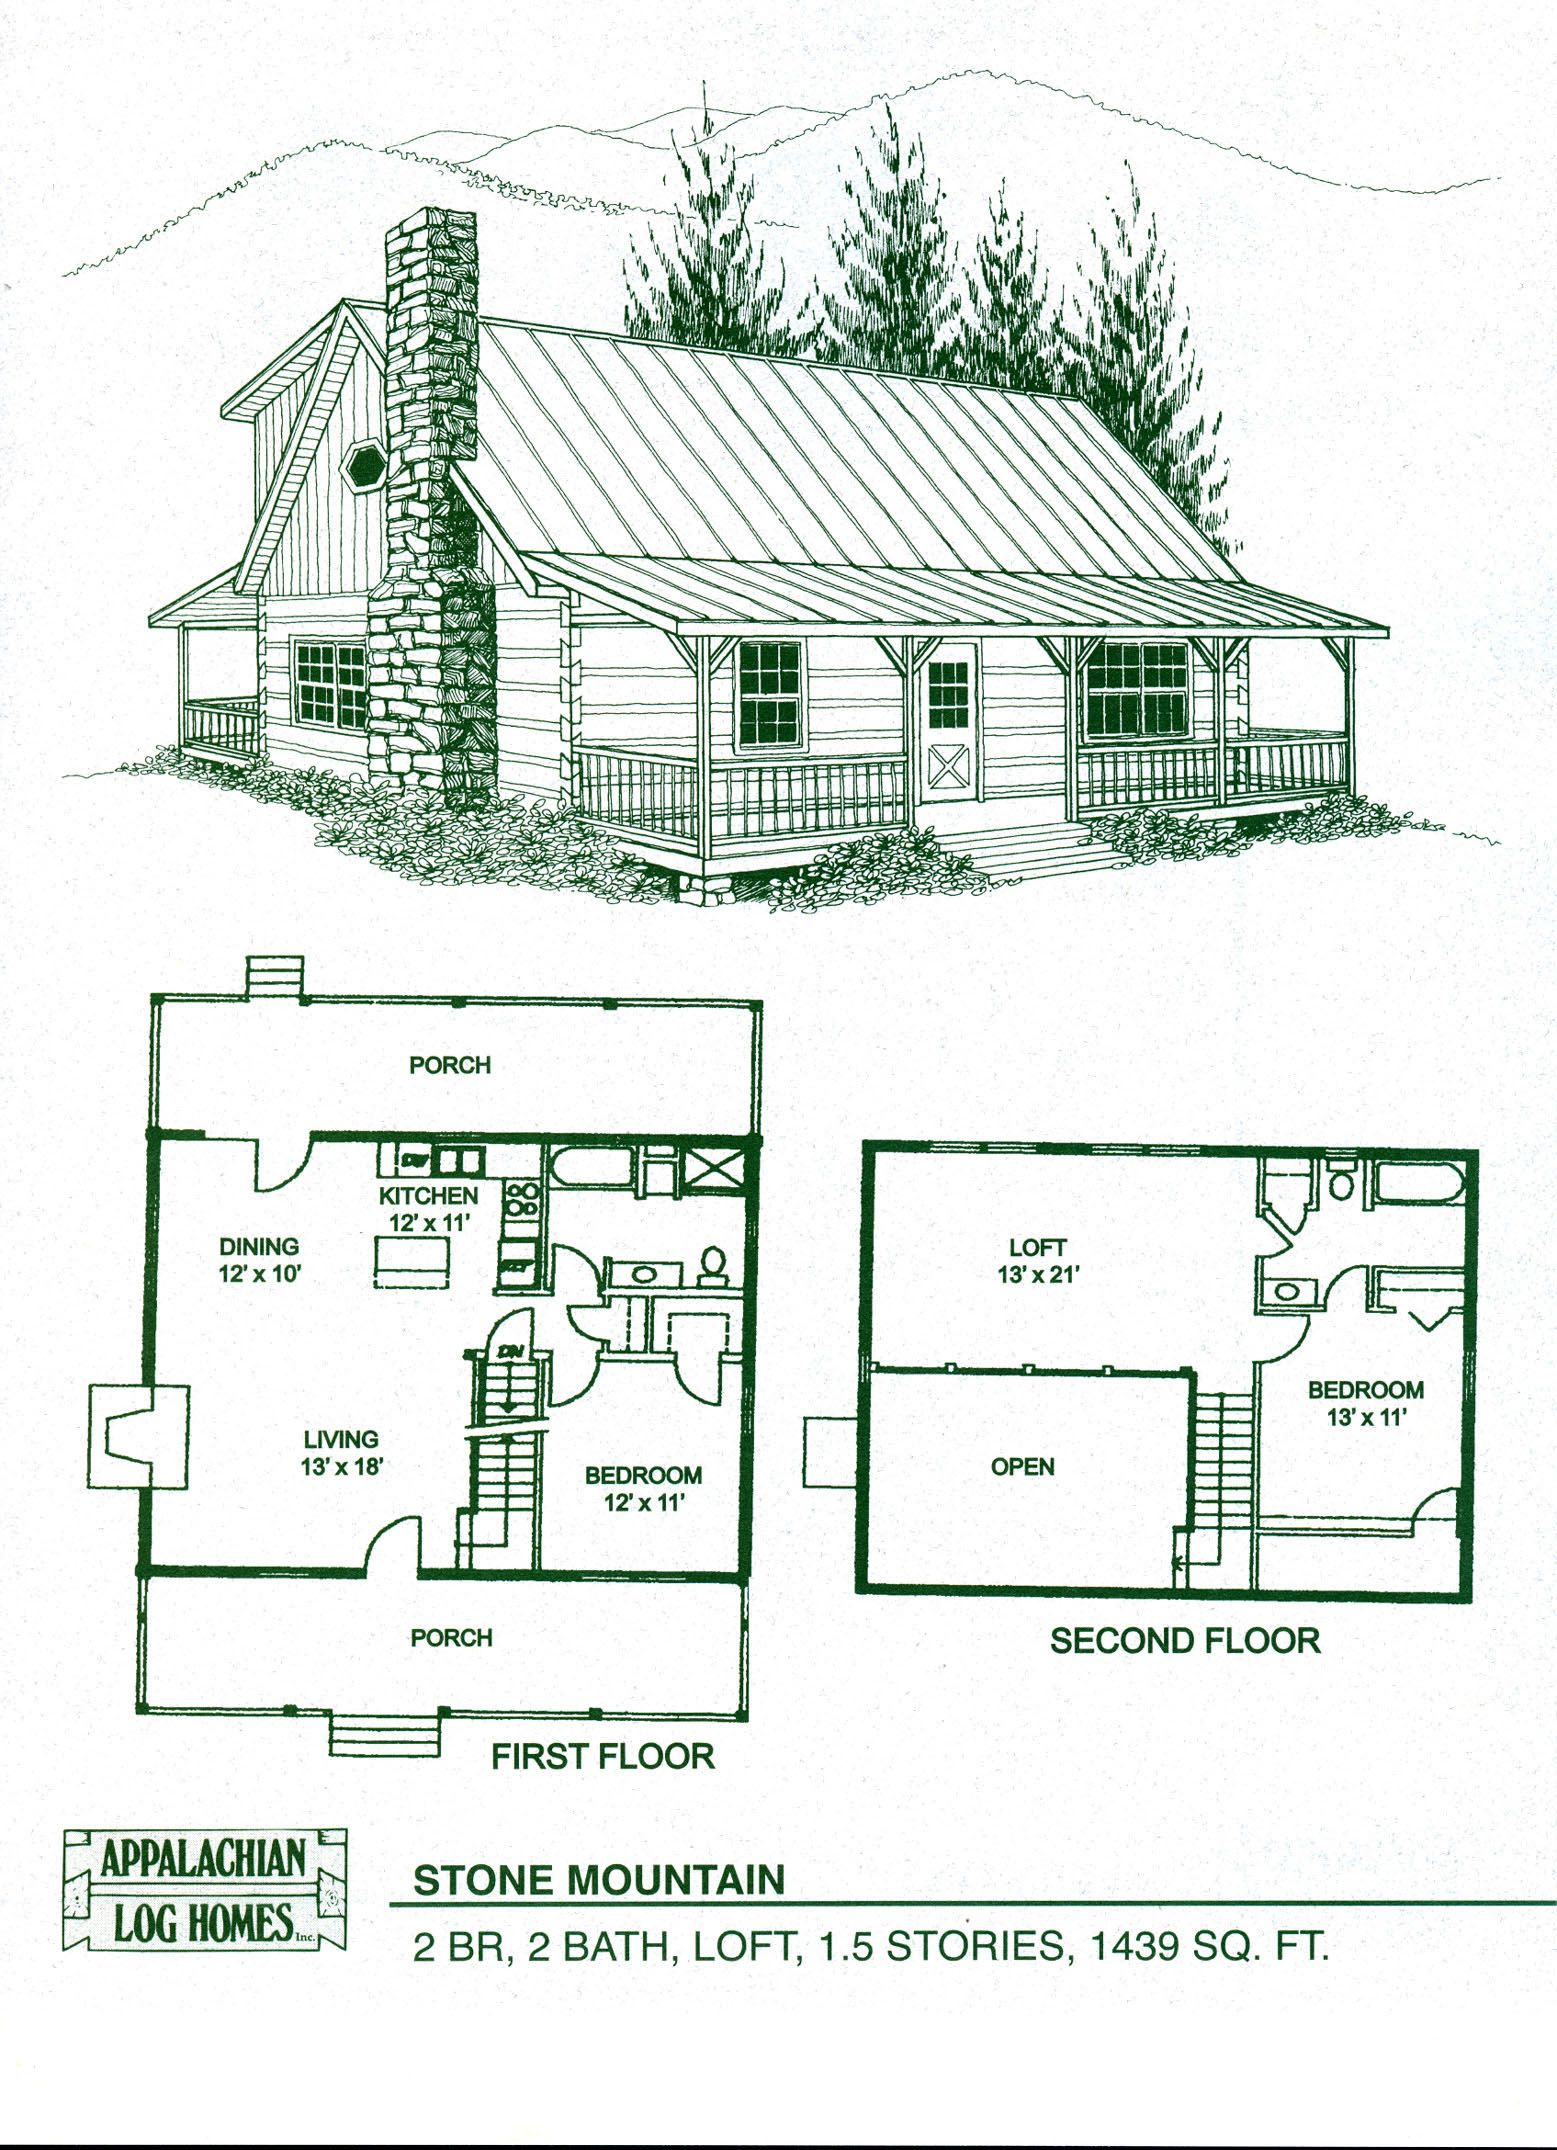 Elegant Cabin Home Plans With Loft | Log Home Floor Plans   Log Cabin Kits    Appalachian Part 5